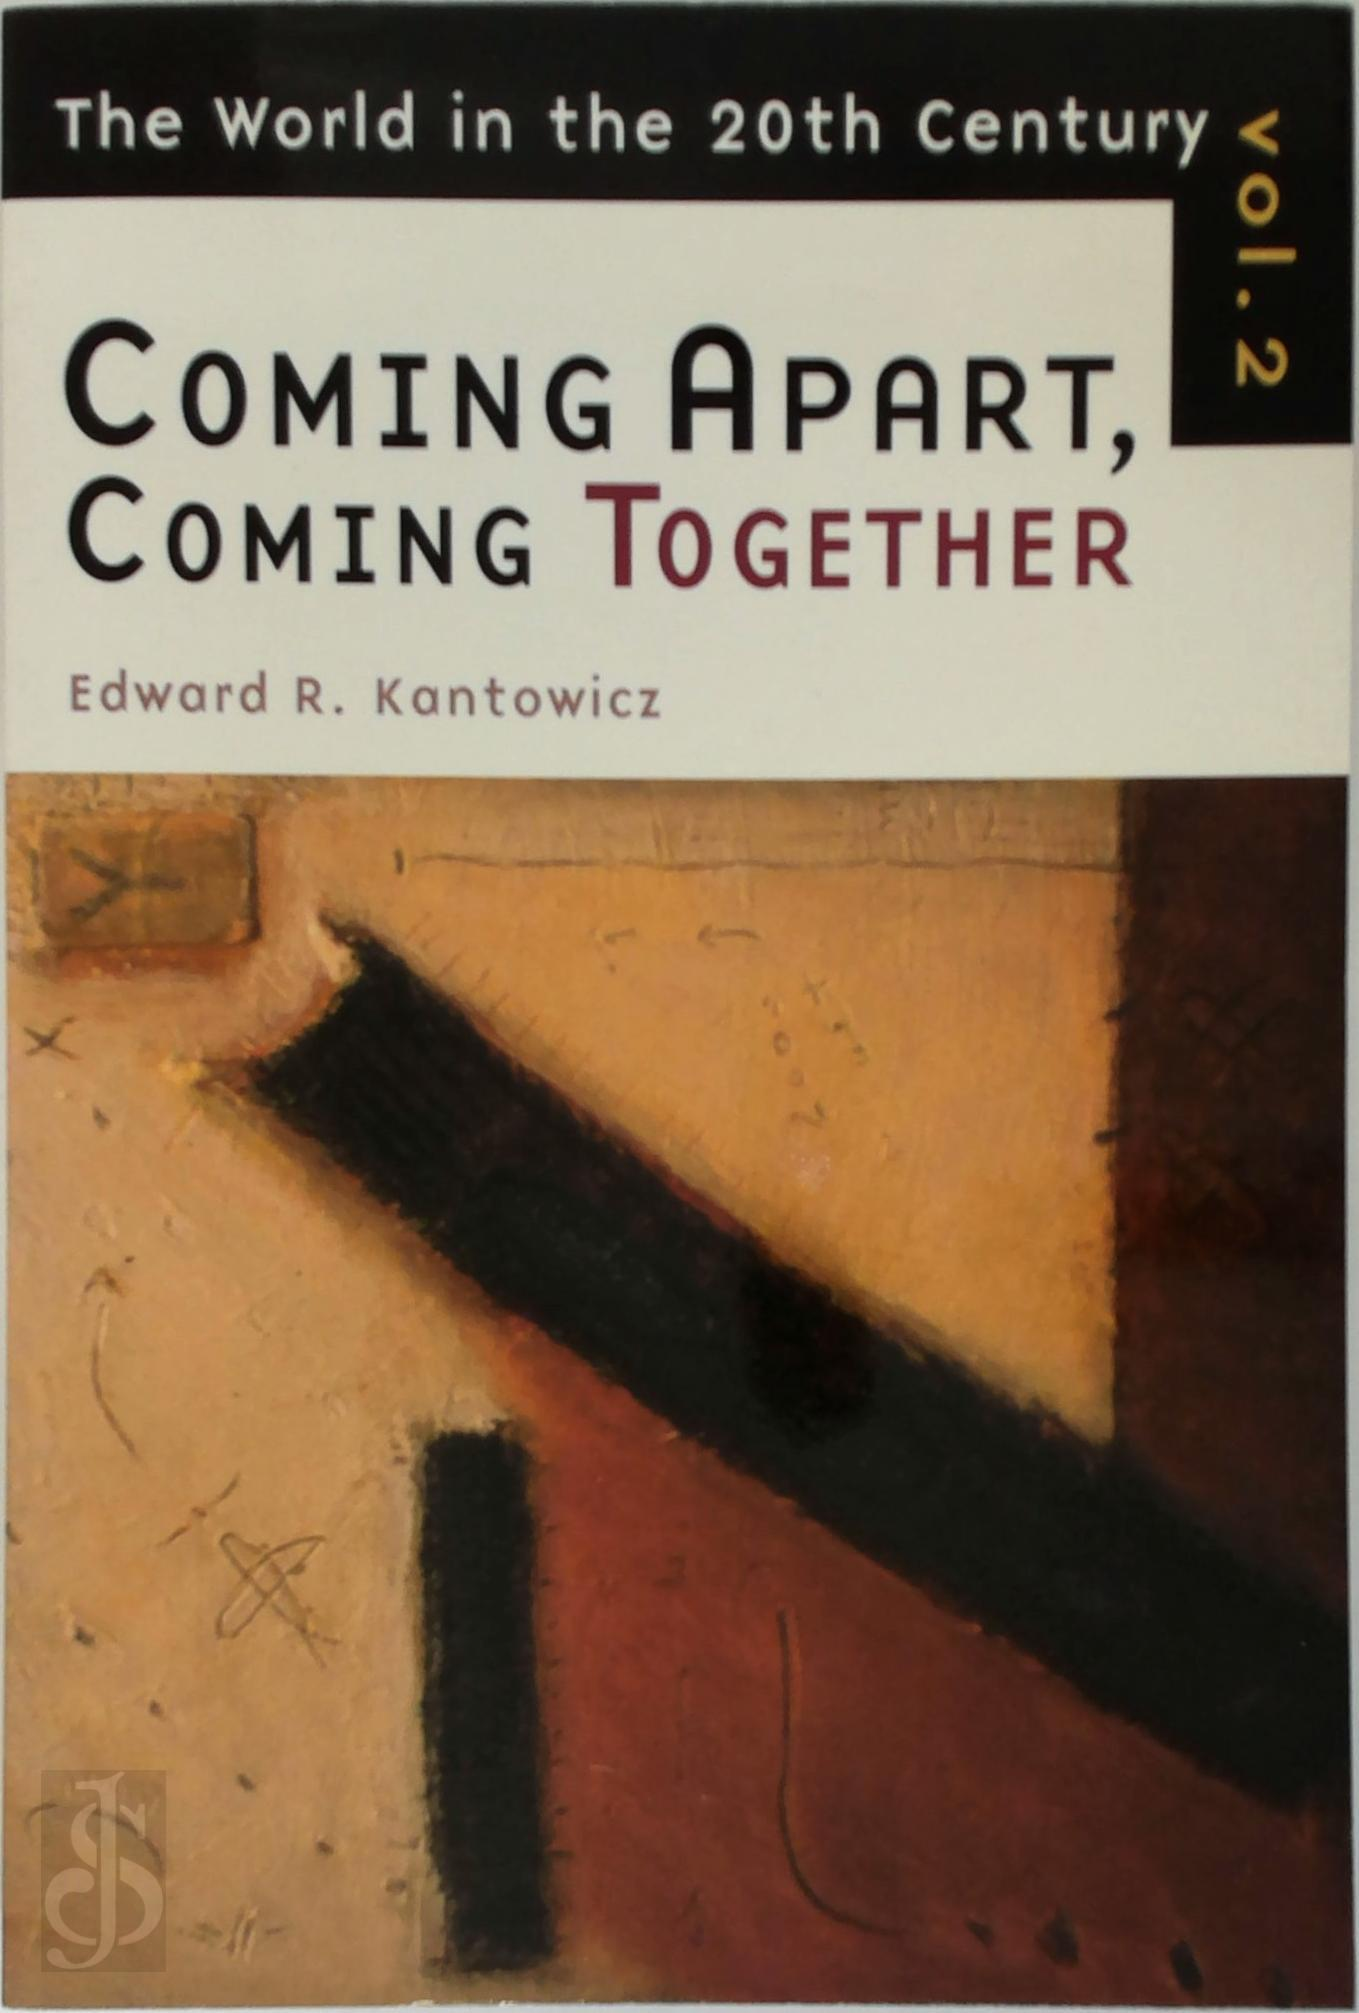 Coming Apart, Coming Together